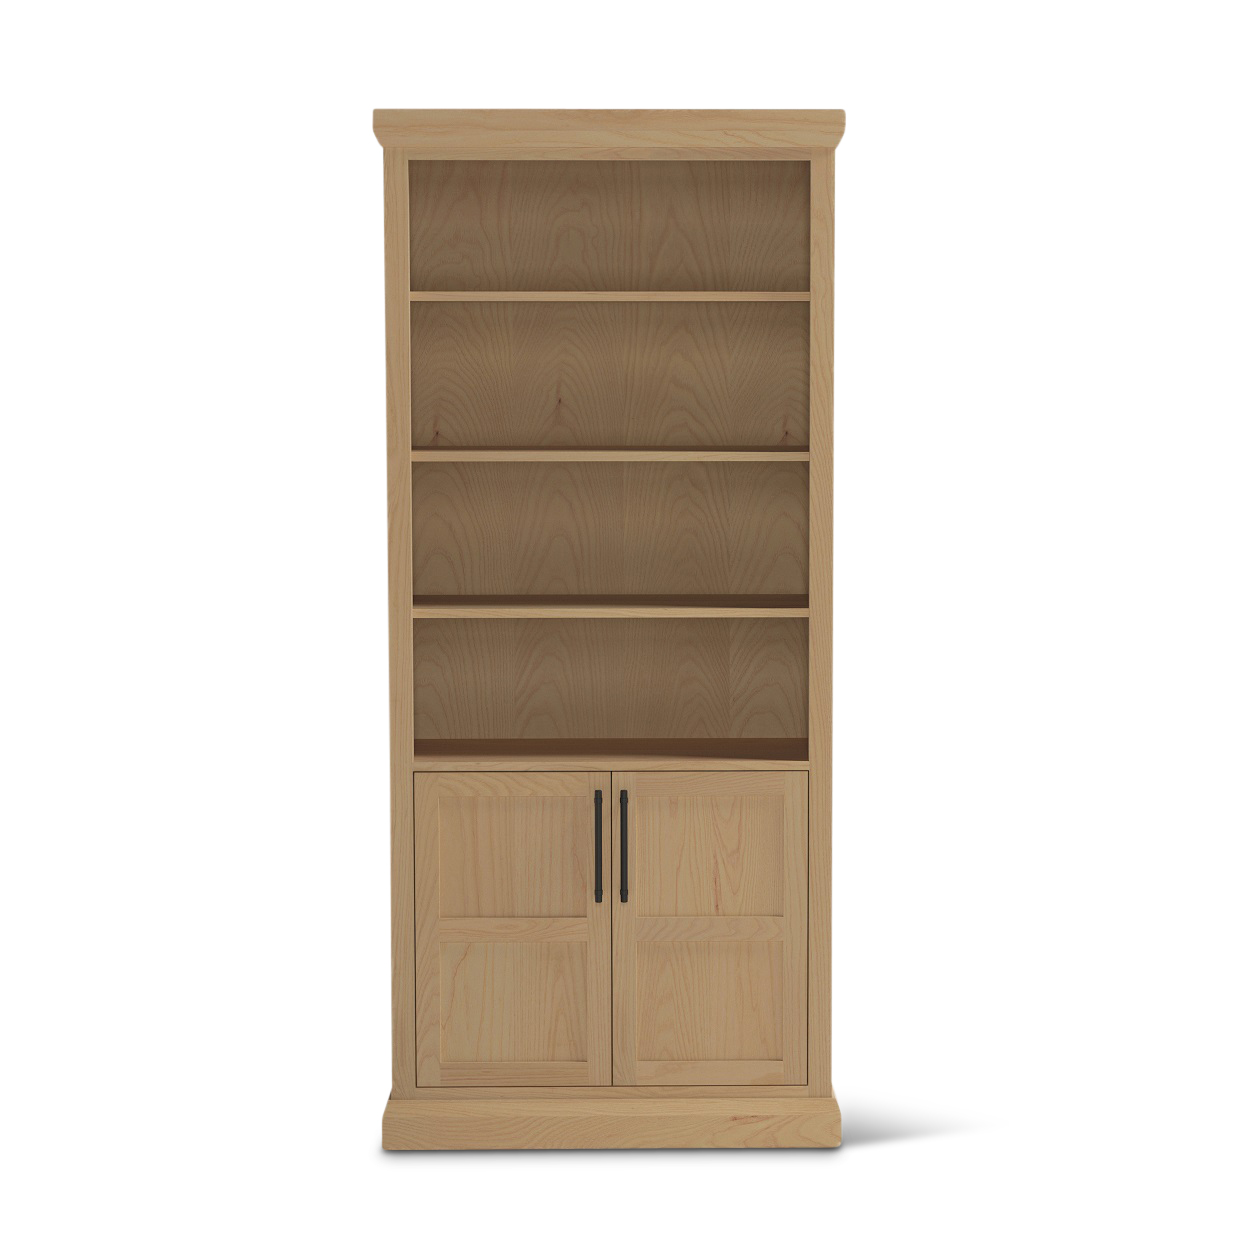 "82"" tall Bureau ash wood contemporary bookshelf with doors"